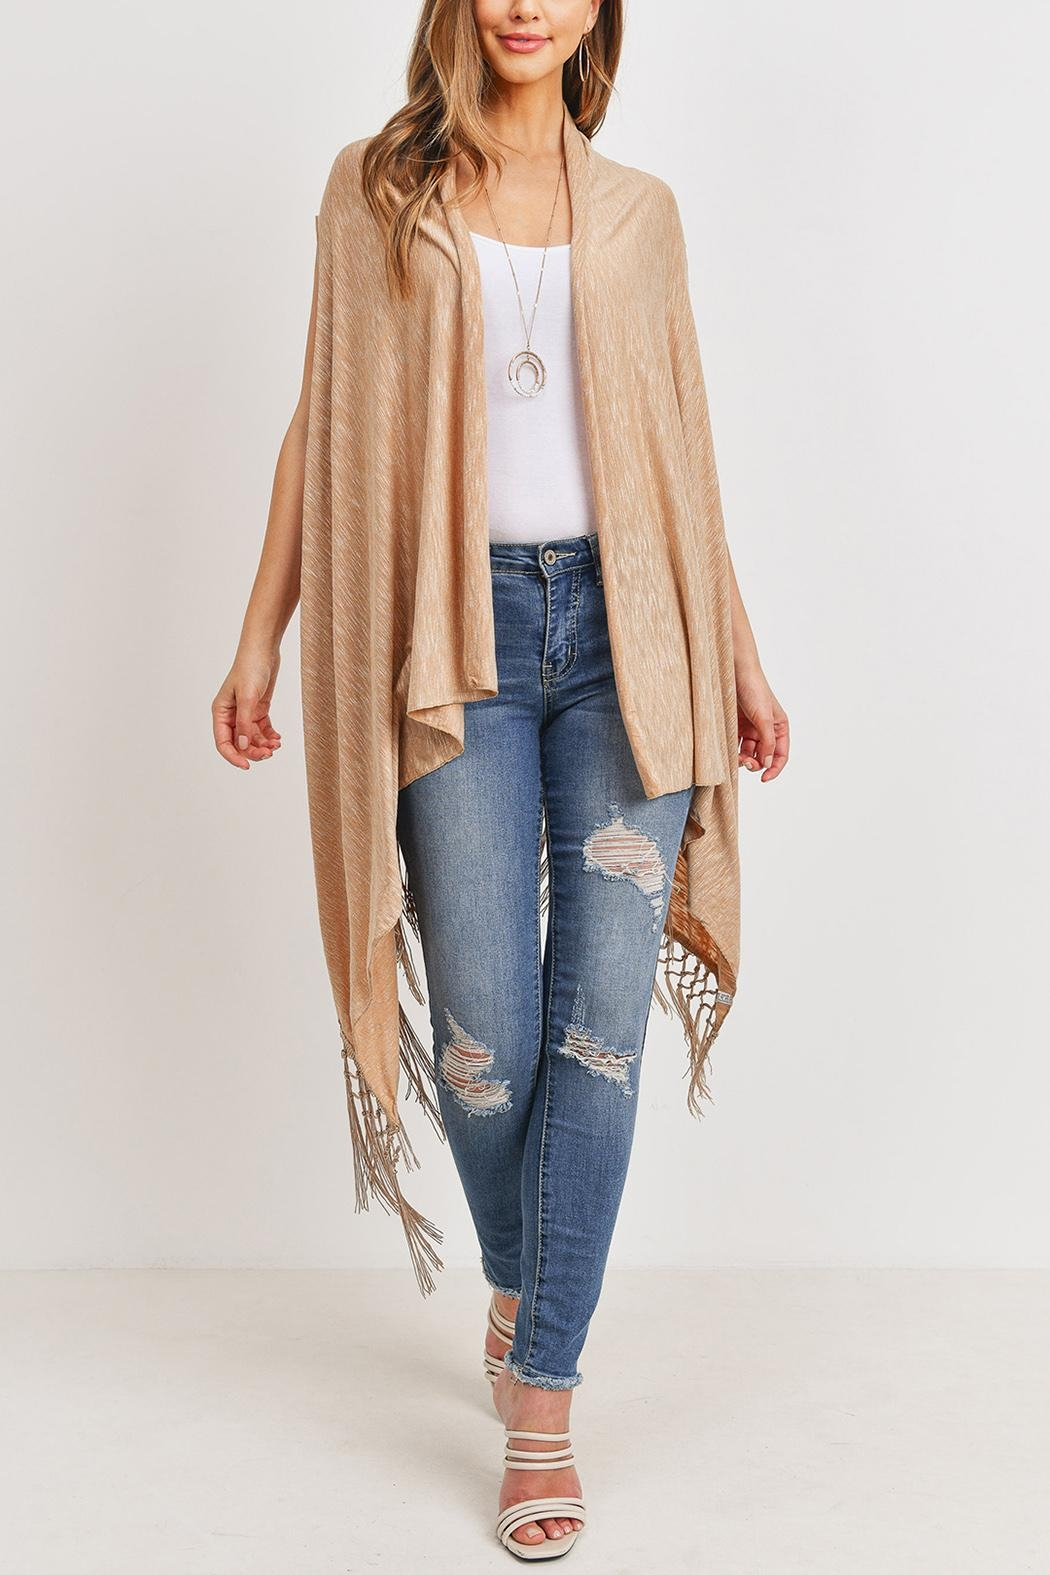 Riah Fashion Open-Front Fringe-Tassel Kimono-Vest - Side Cropped Image